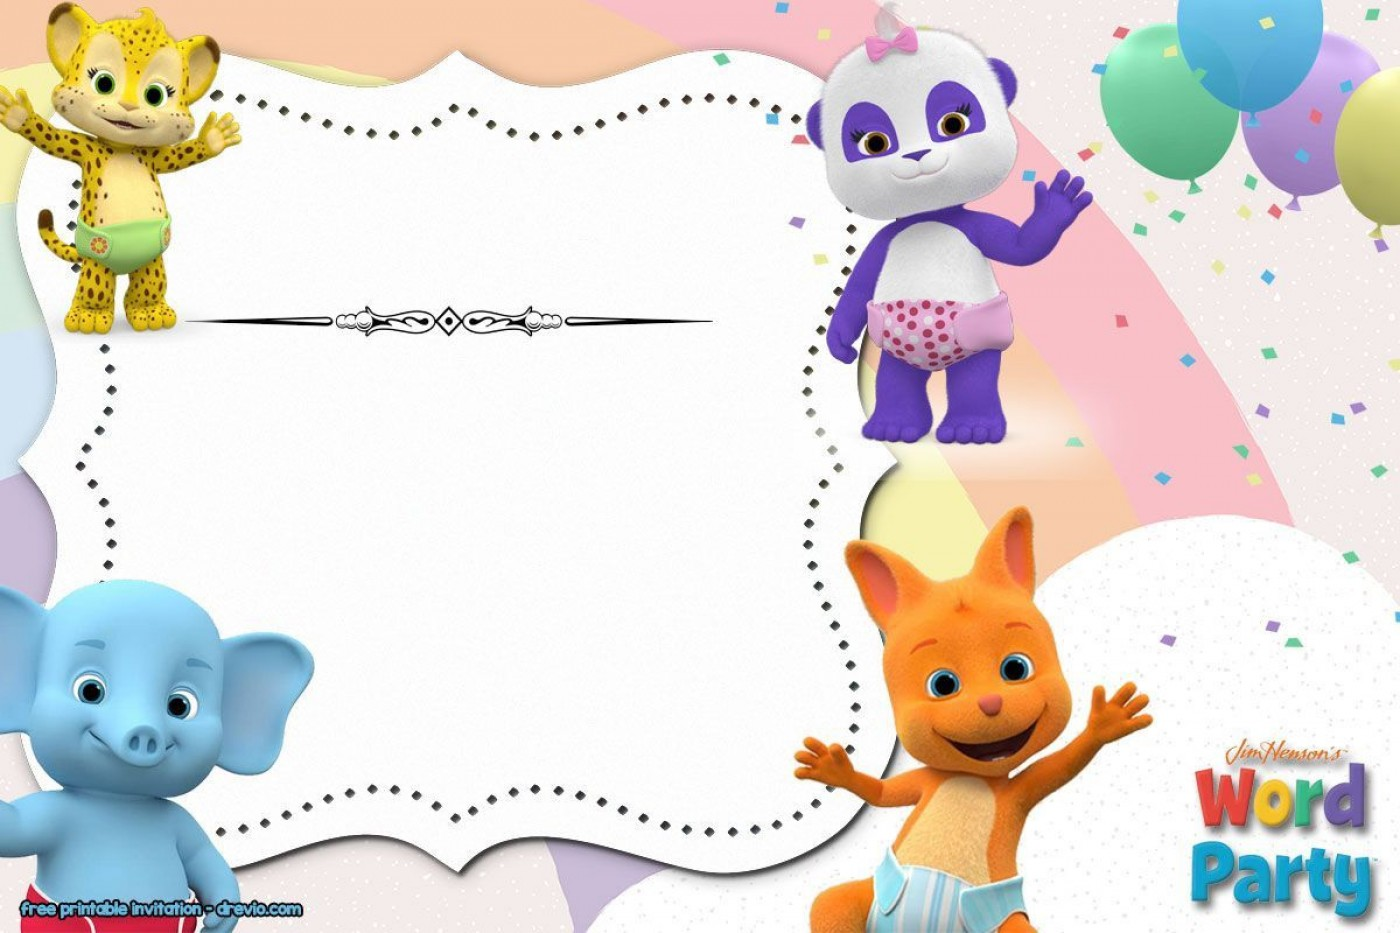 002 Impressive Free Birthday Party Invitation Template For Word Sample 1400